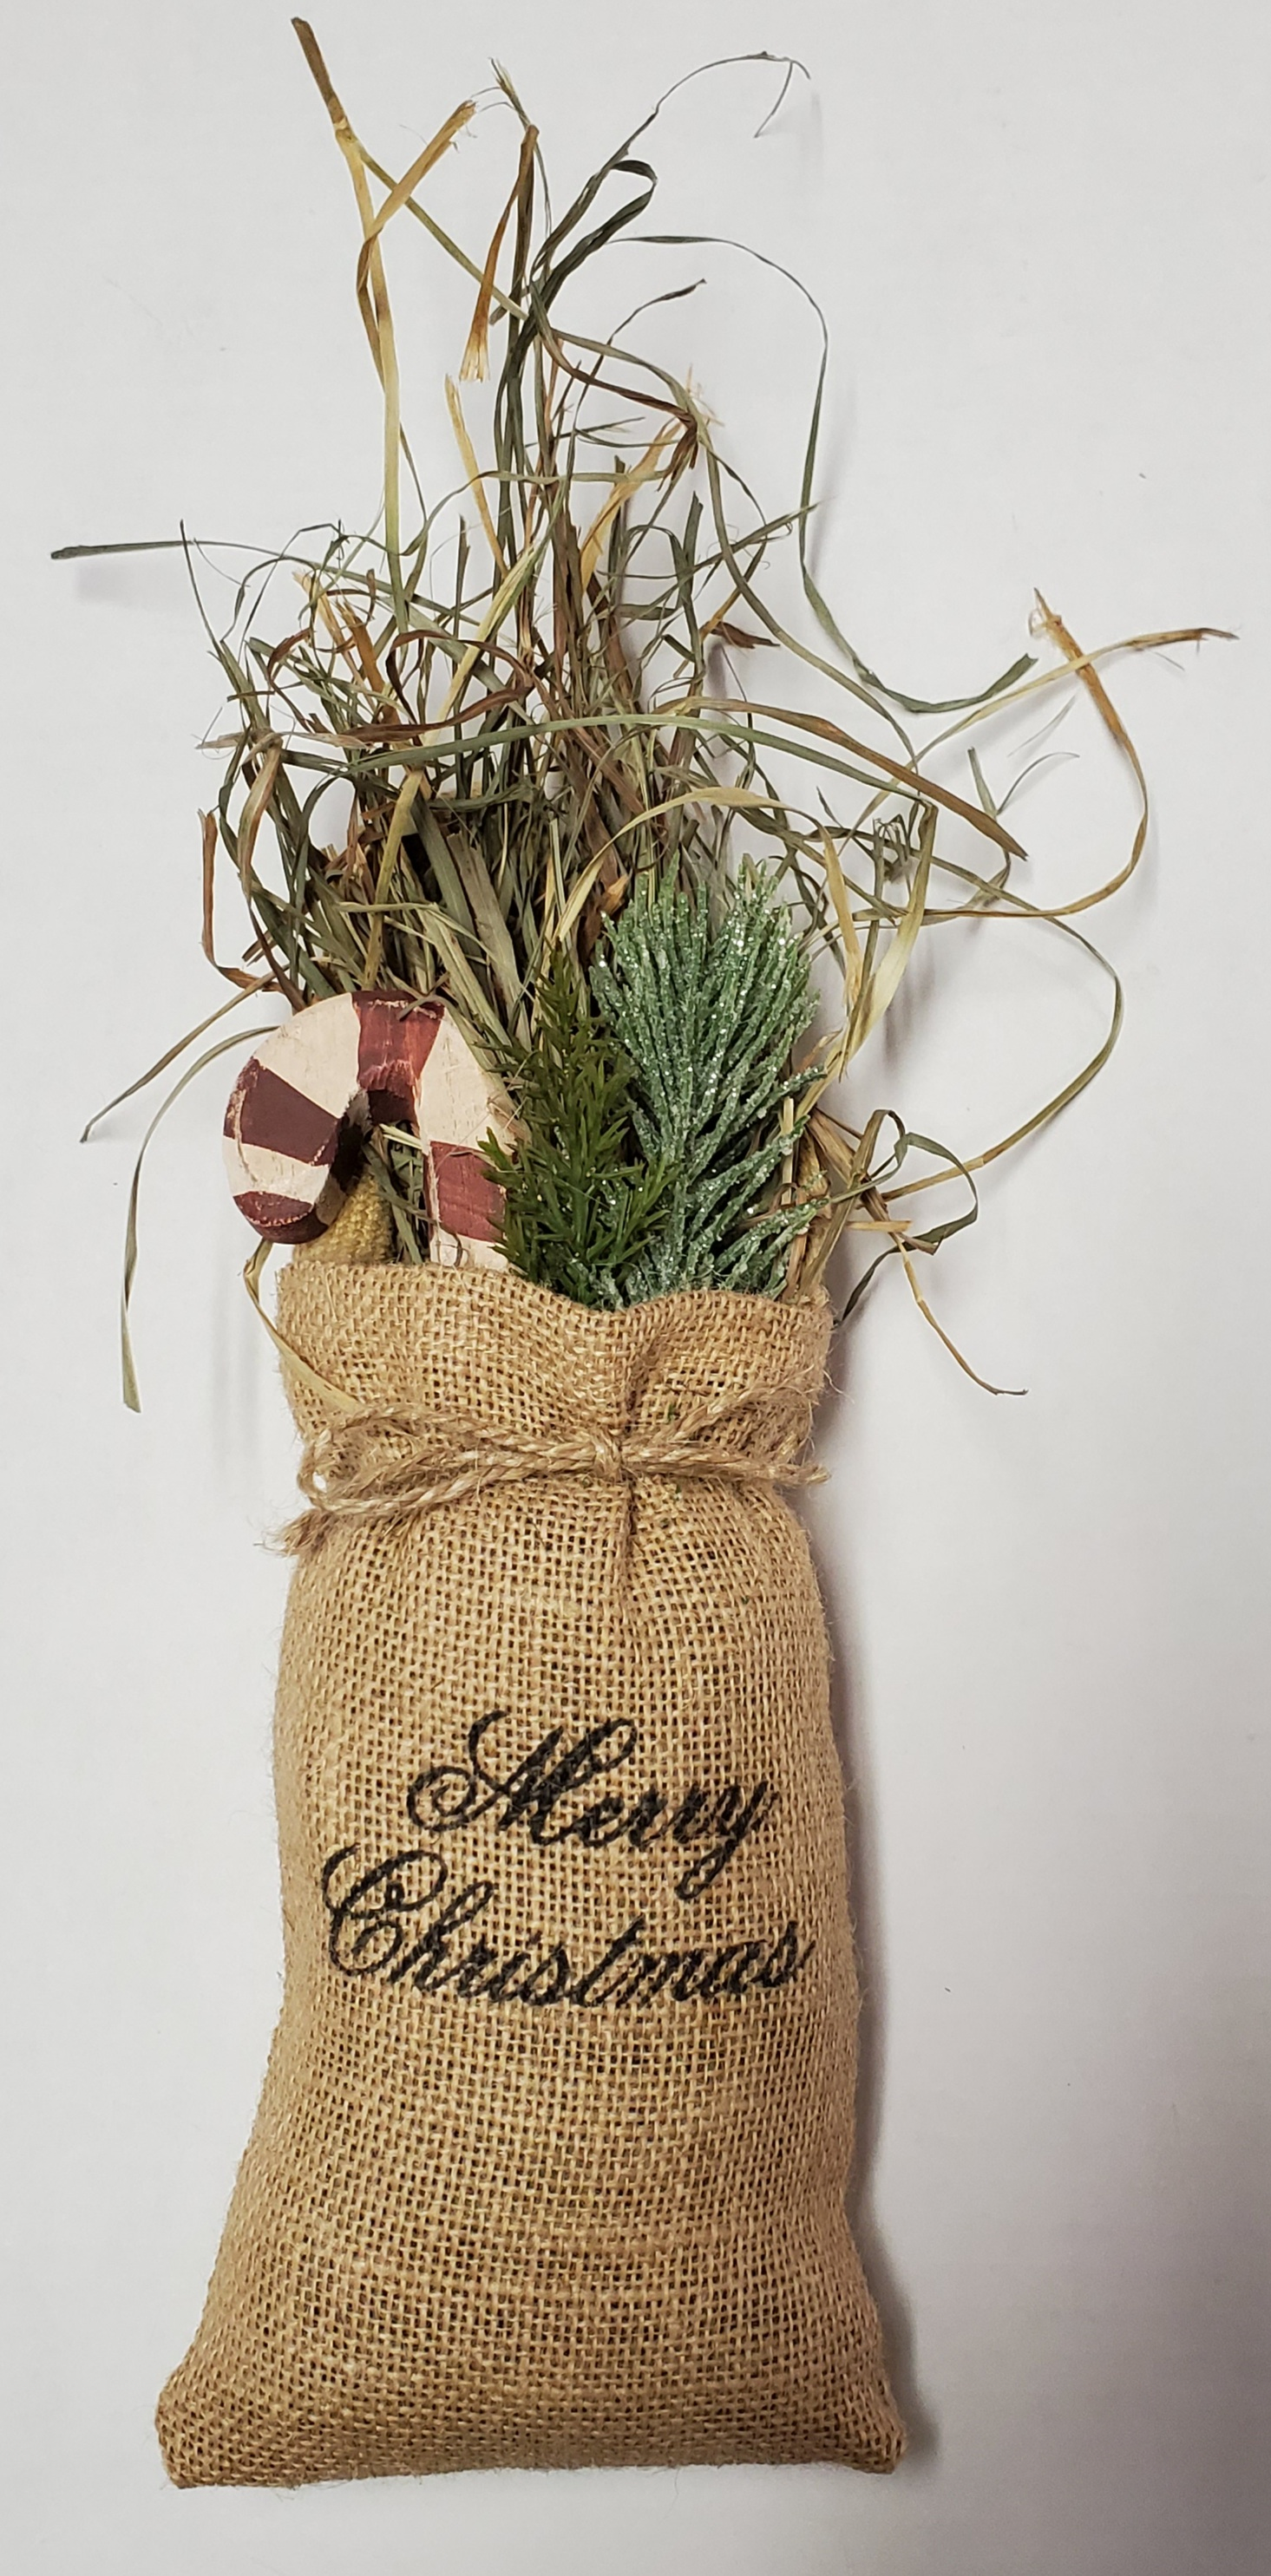 Merry Christmas Burlap Bag with Candy Cane